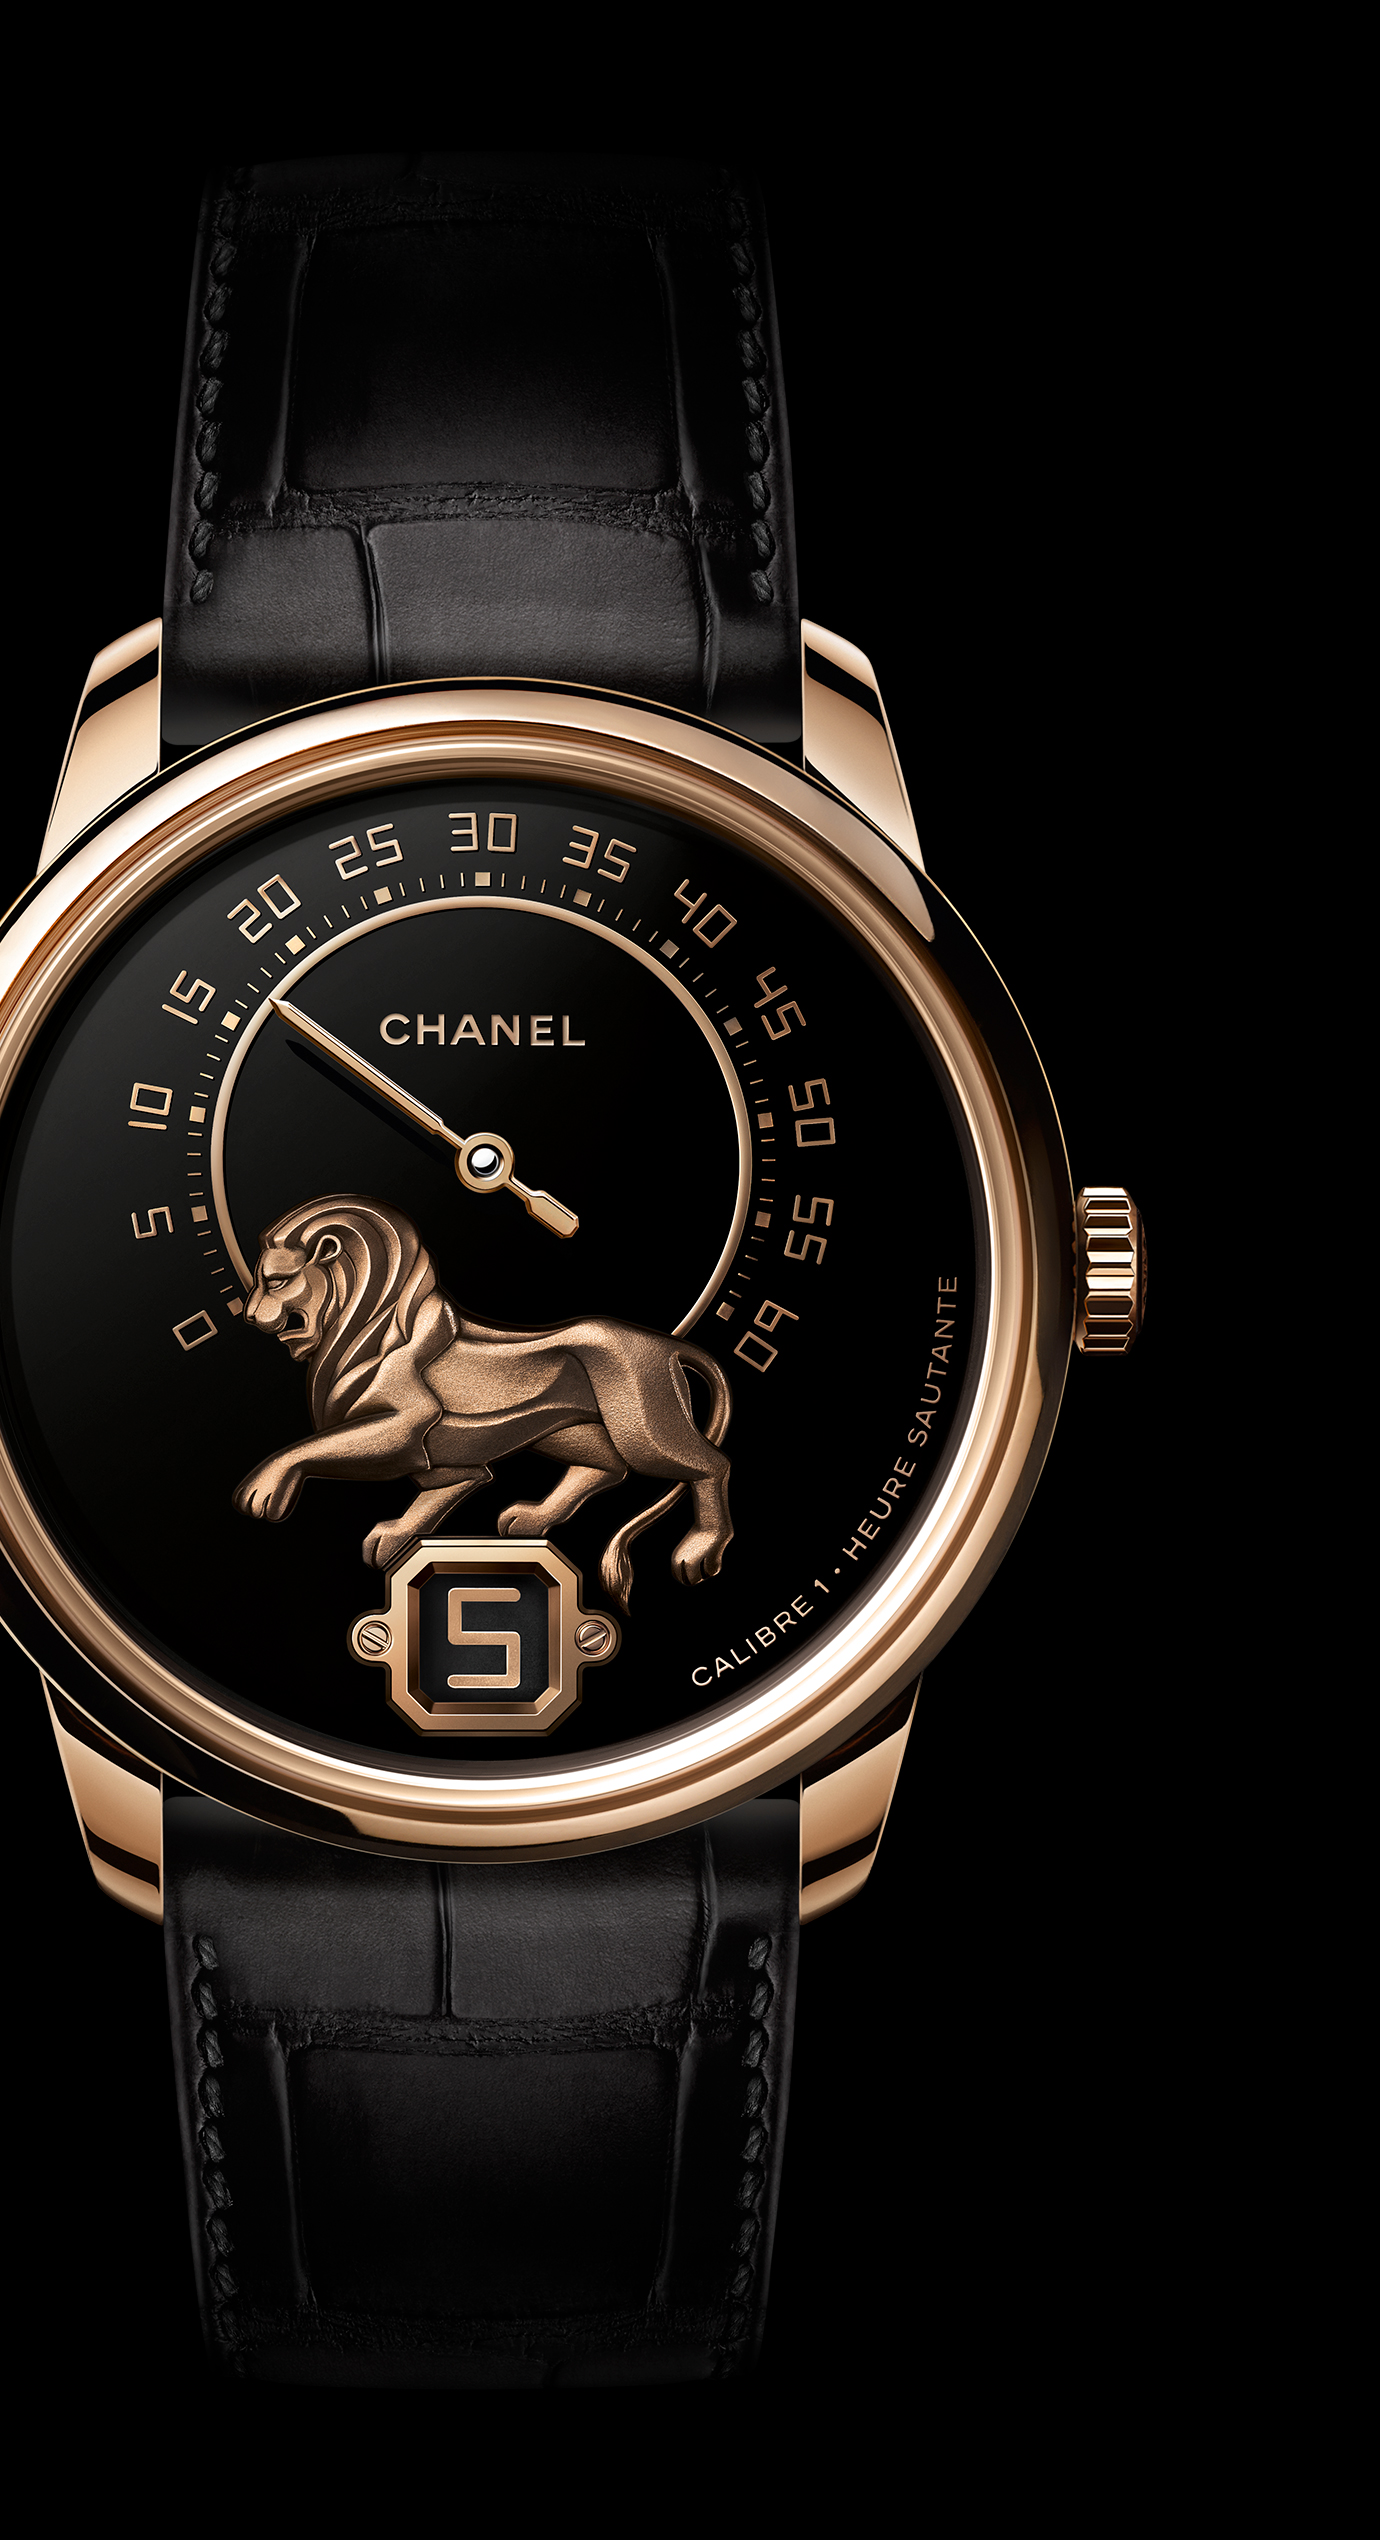 Monsieur Watch, BEIGE GOLD, 'Grand Feu' enamel with gold sculpted lion dial, jumping hour and 240° retrograde minute - Enlarged view